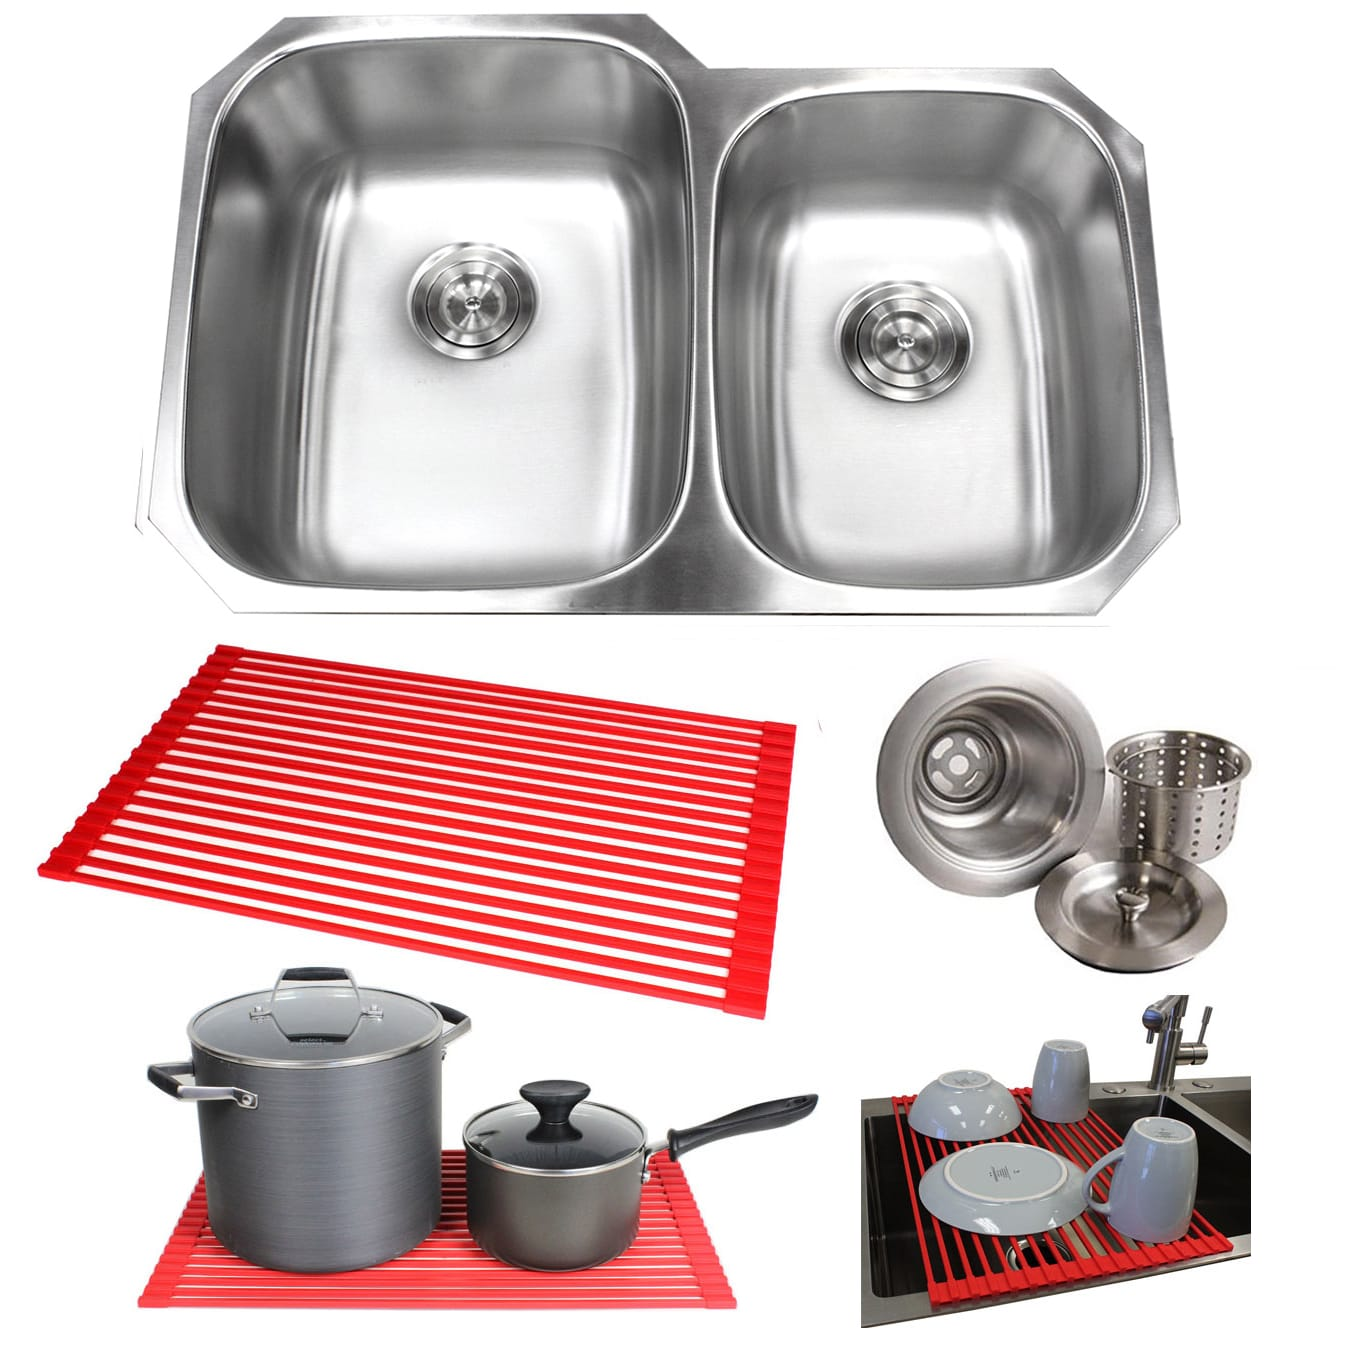 32 Stainless Steel 18g Double 60 40 Dish Rack 32 Inch Double 60 40